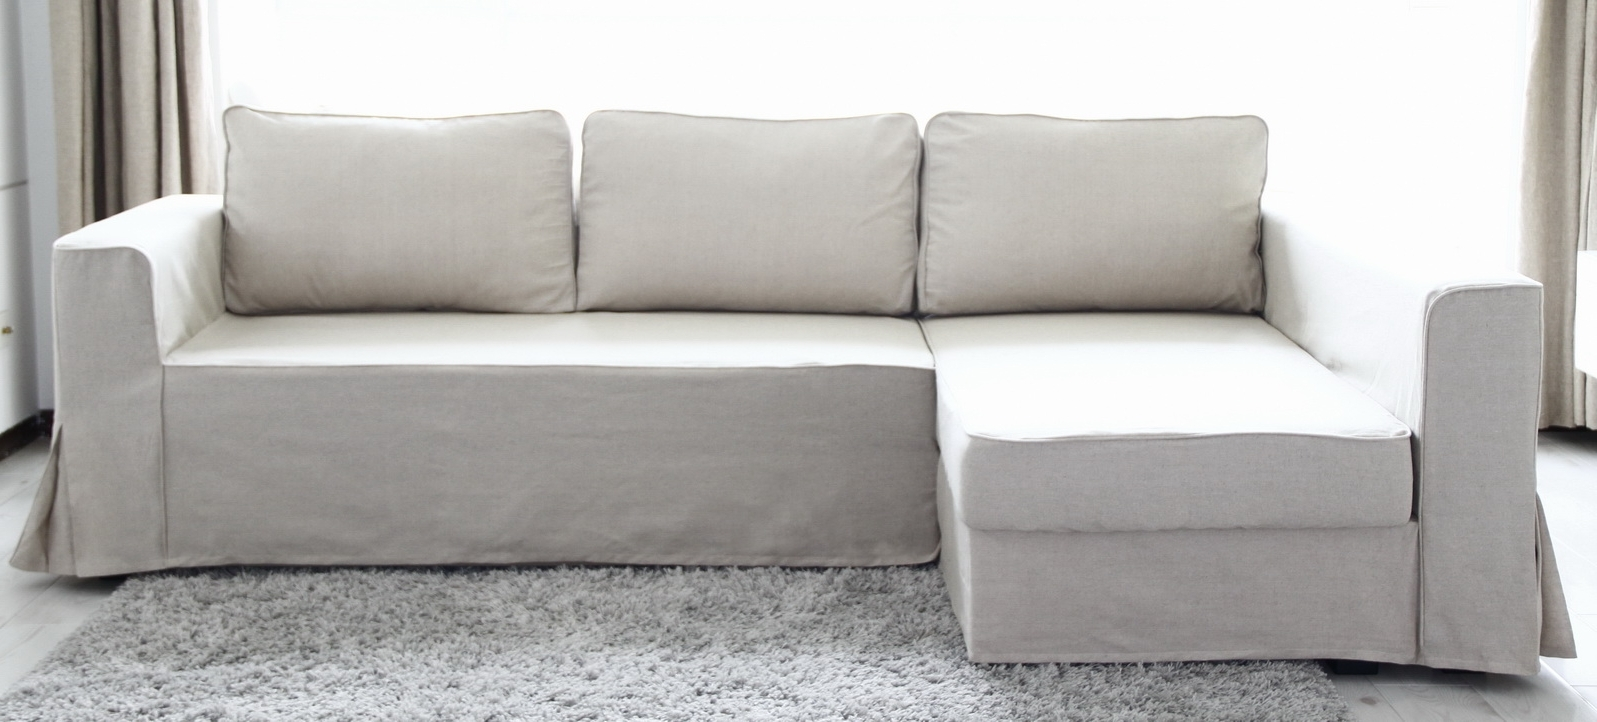 Best Sleeper Sofa At Ikea – S3Net – Sectional Sofas Sale : S3Net In 2019 Ikea Sectional Sleeper Sofas (View 4 of 20)